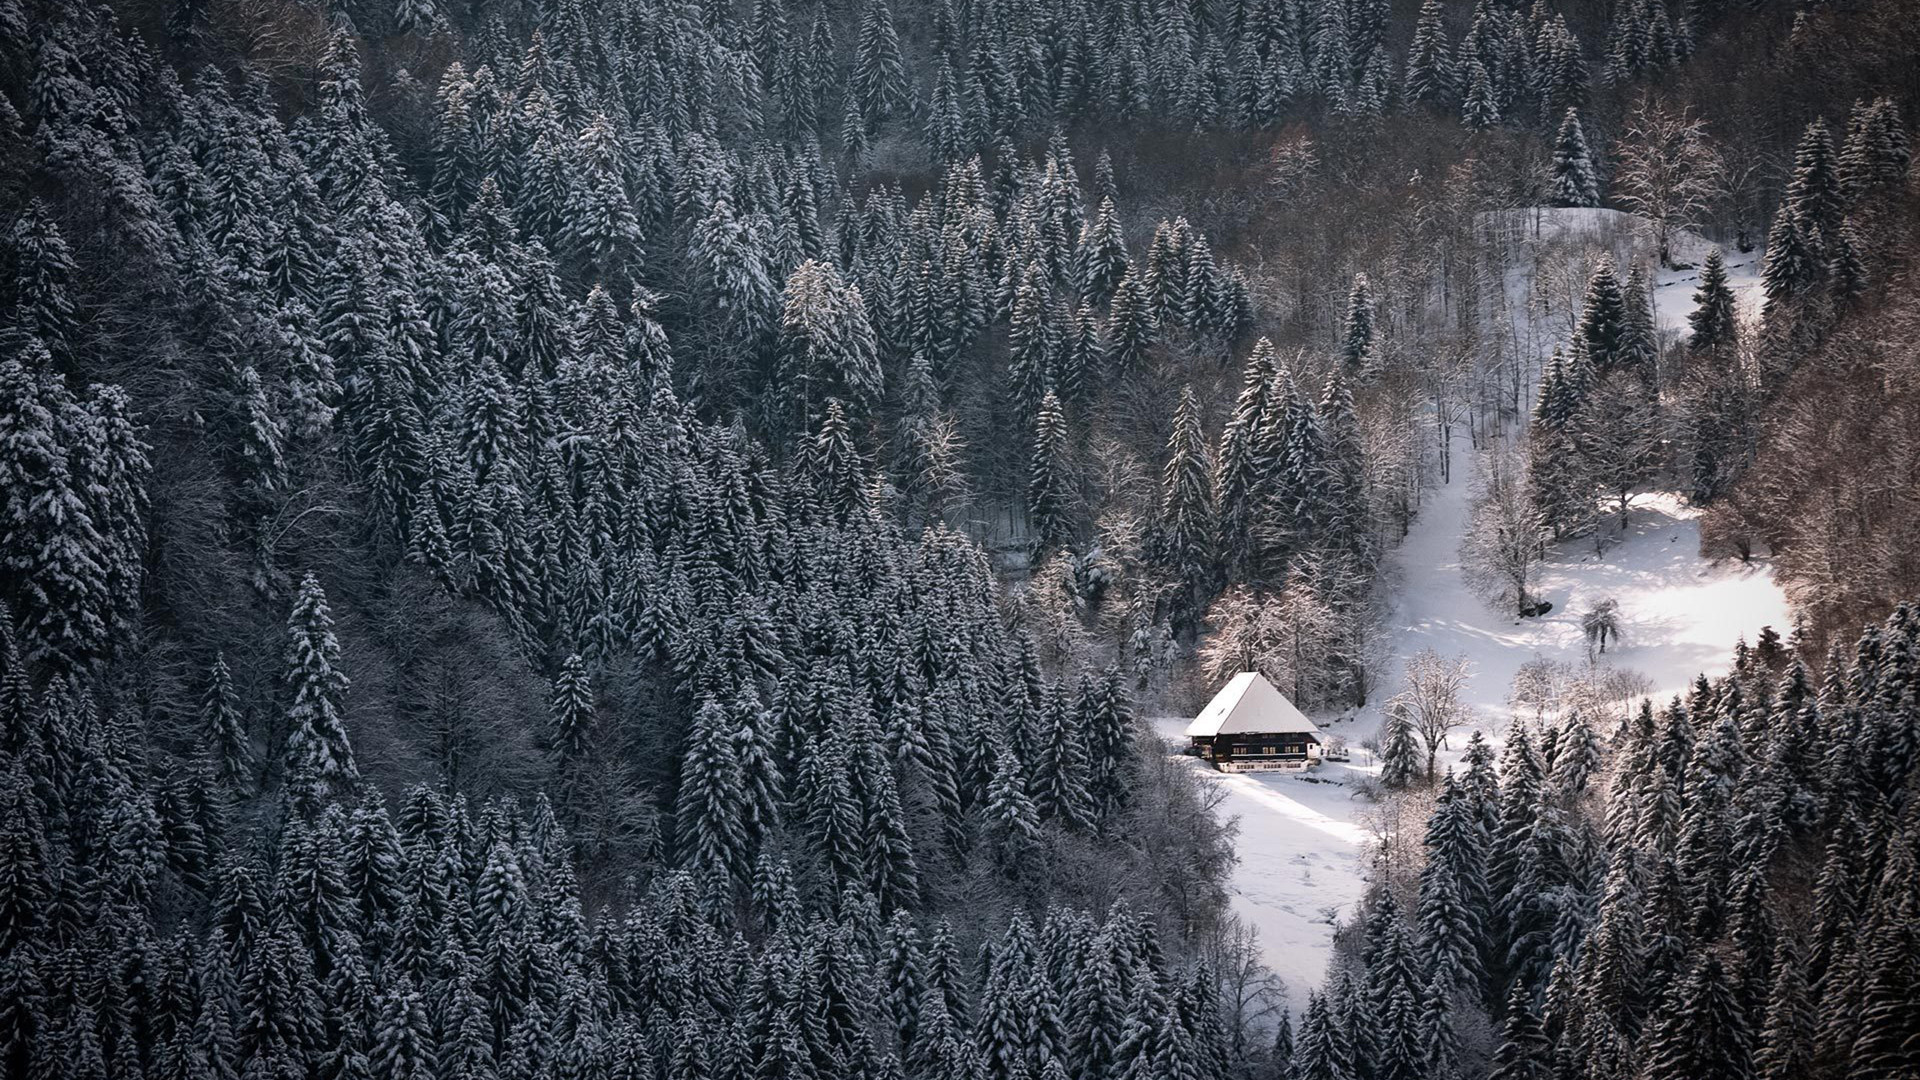 Image – Hd-wallpapers-wallpaper-winter-forest-black-snowy-1920×1080- wallpaper.jpg | Simcountry | FANDOM powered by Wikia